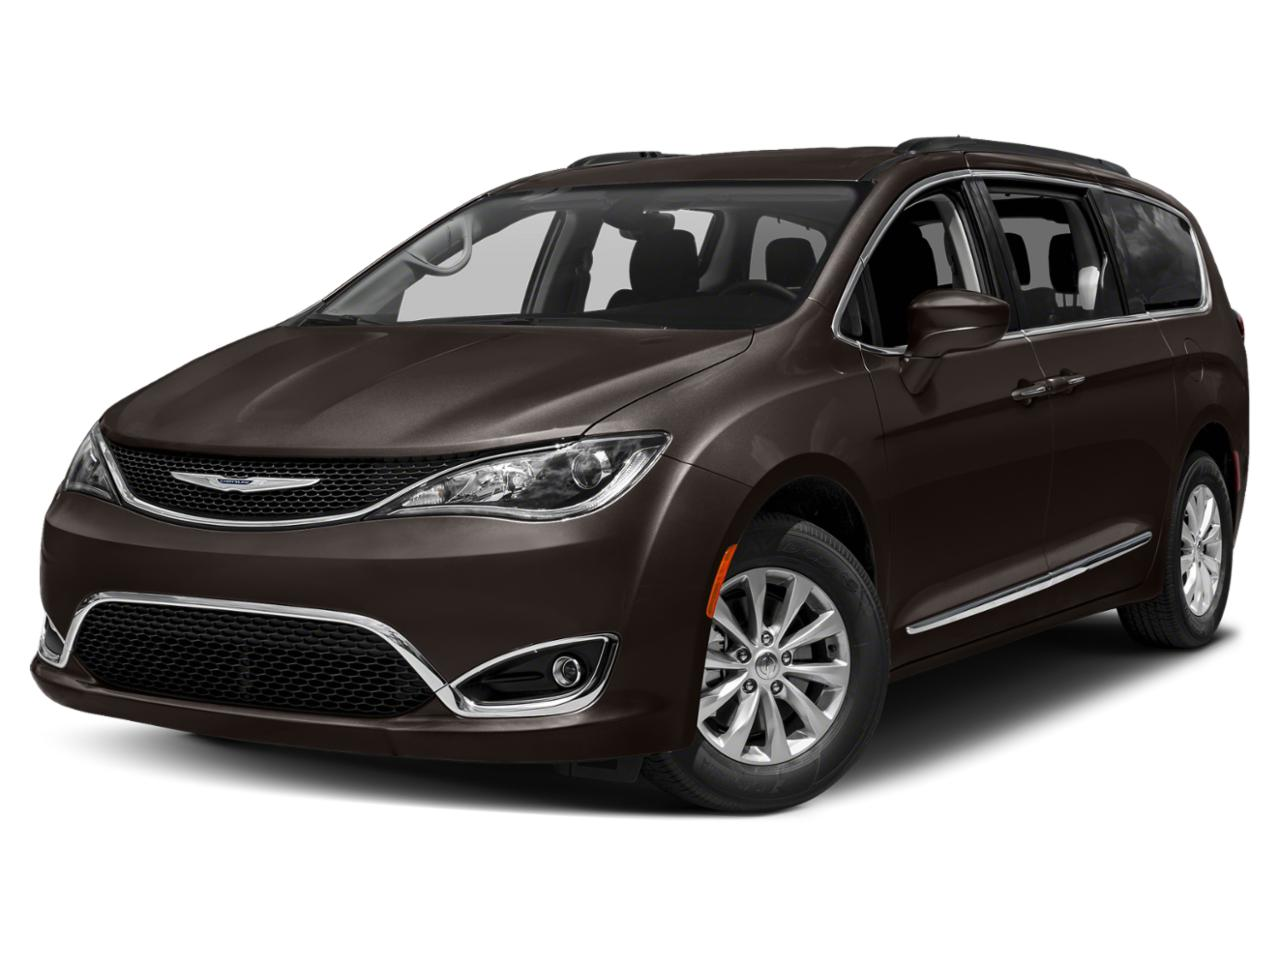 2018 Chrysler Pacifica Vehicle Photo in Medina, OH 44256